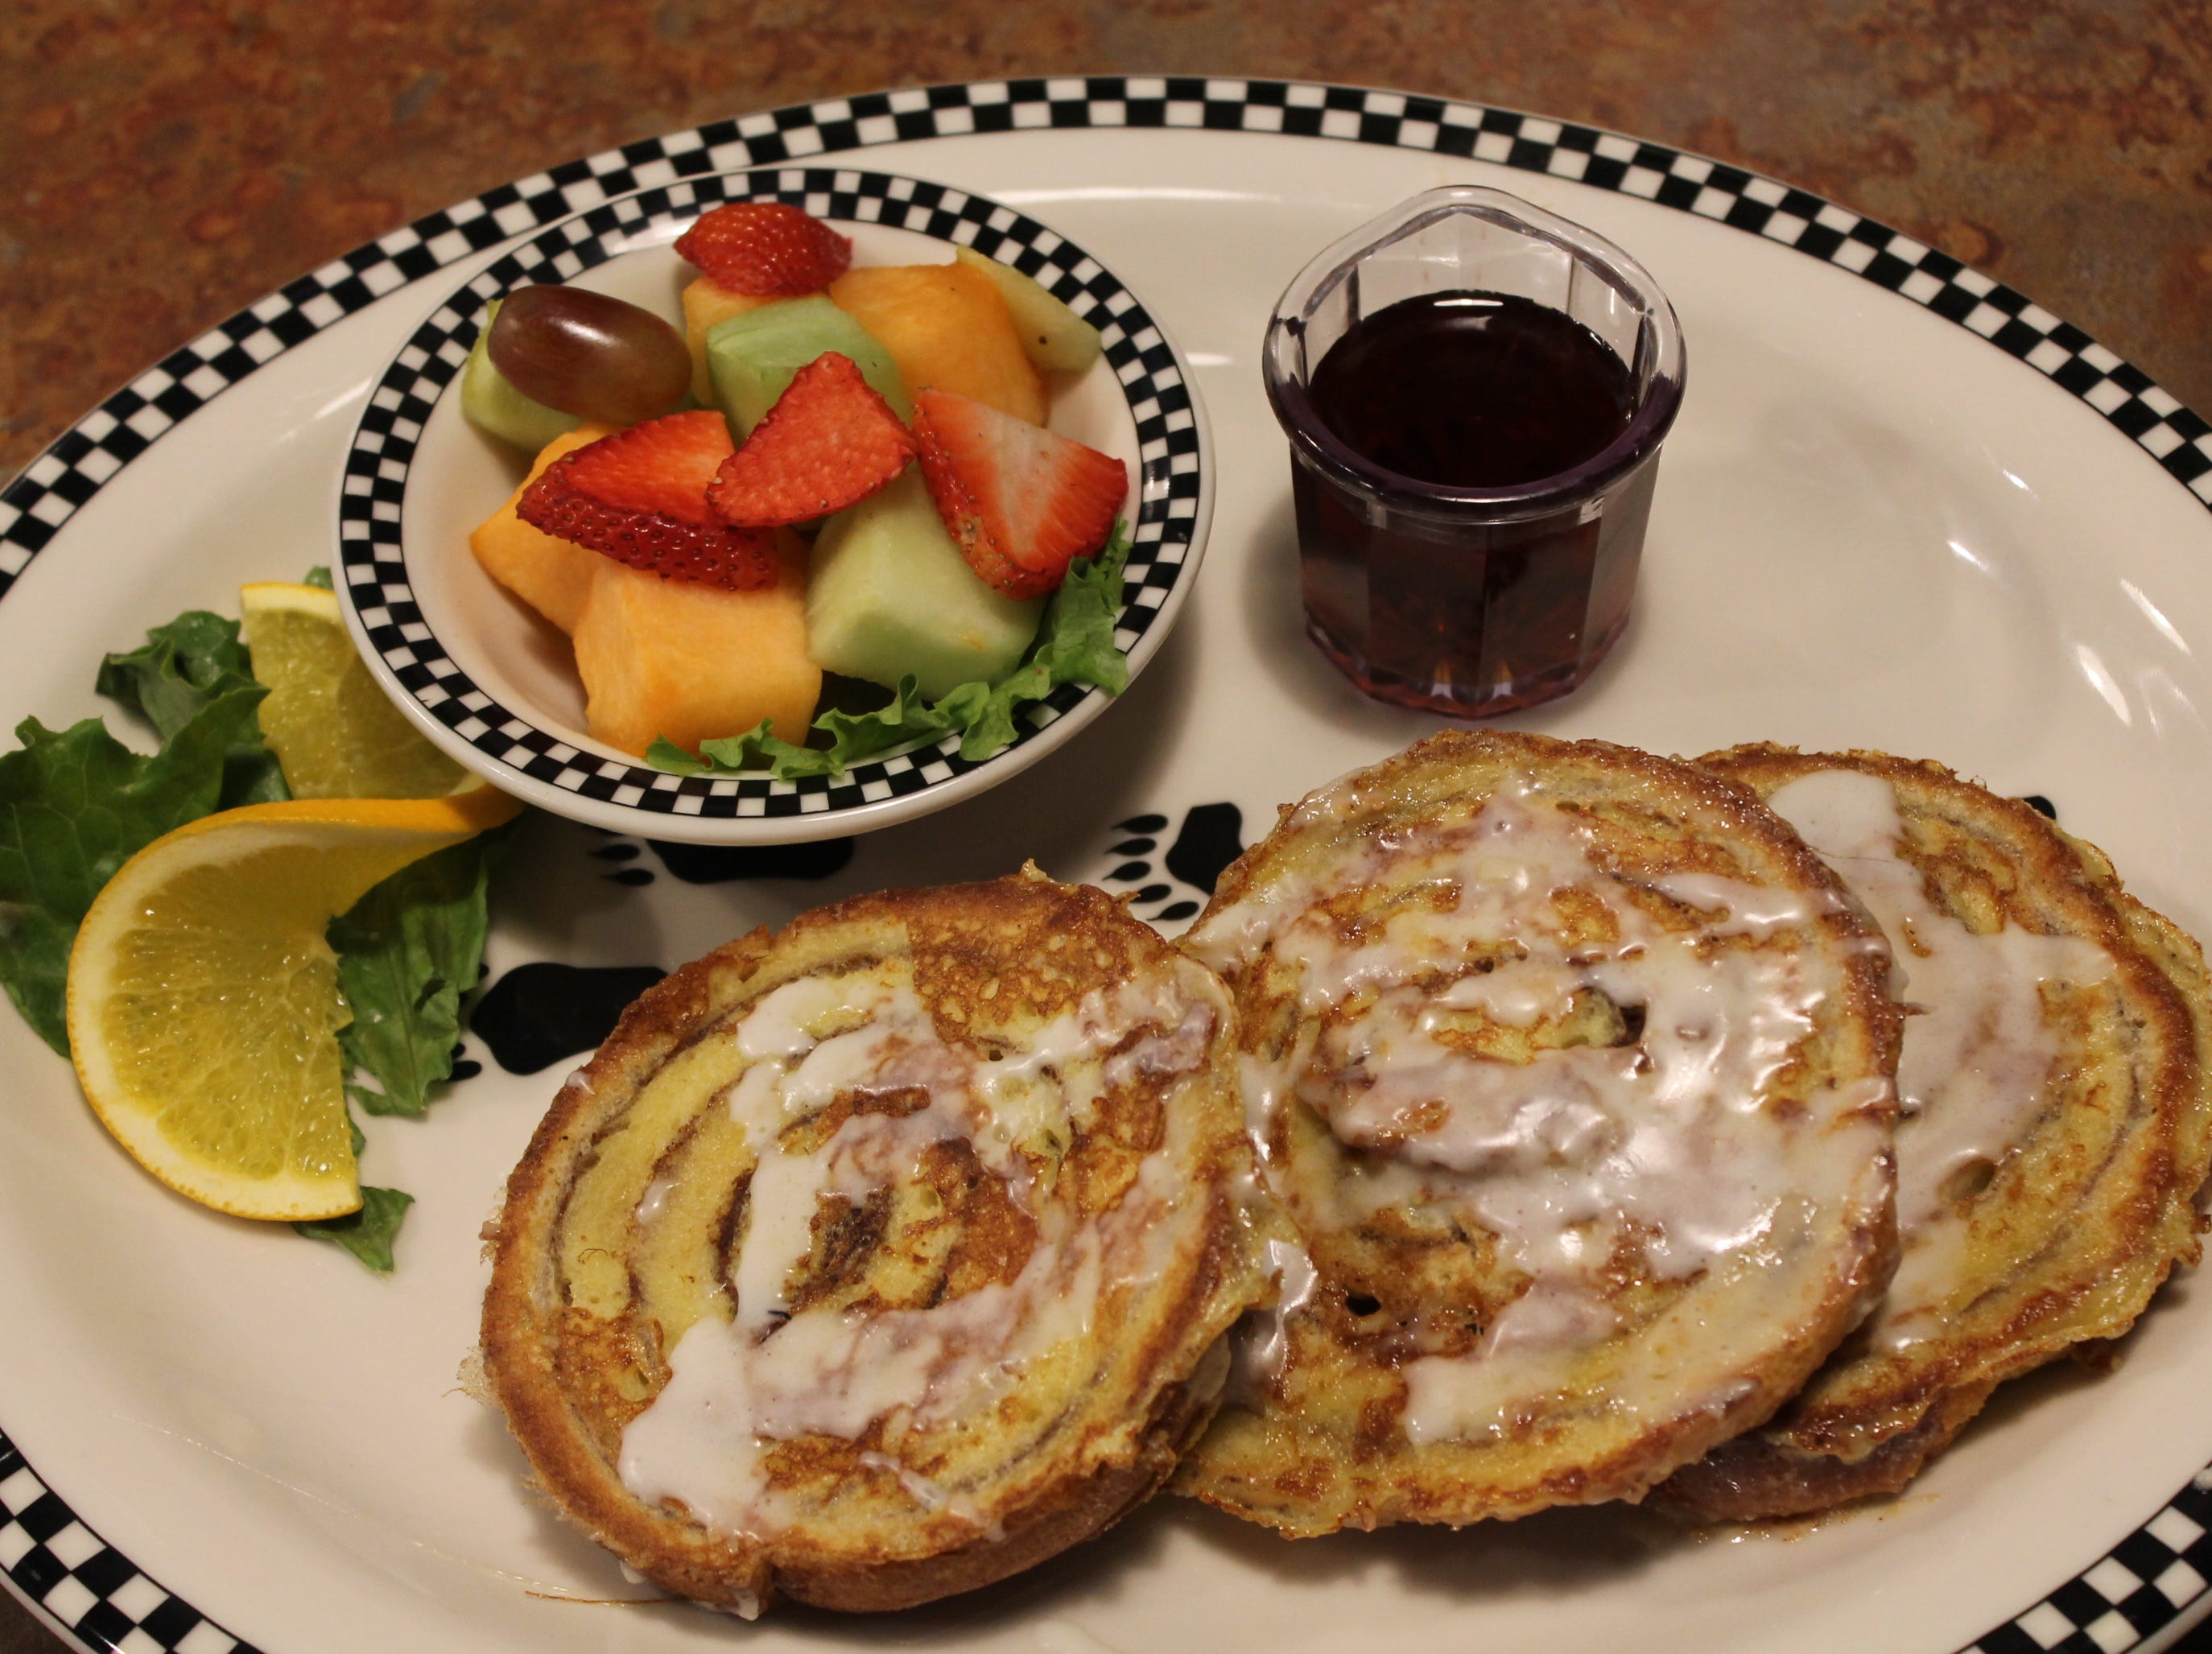 Cinnamon roll French toast is served at the Black Bear Diner in Great Falls Marketplace.